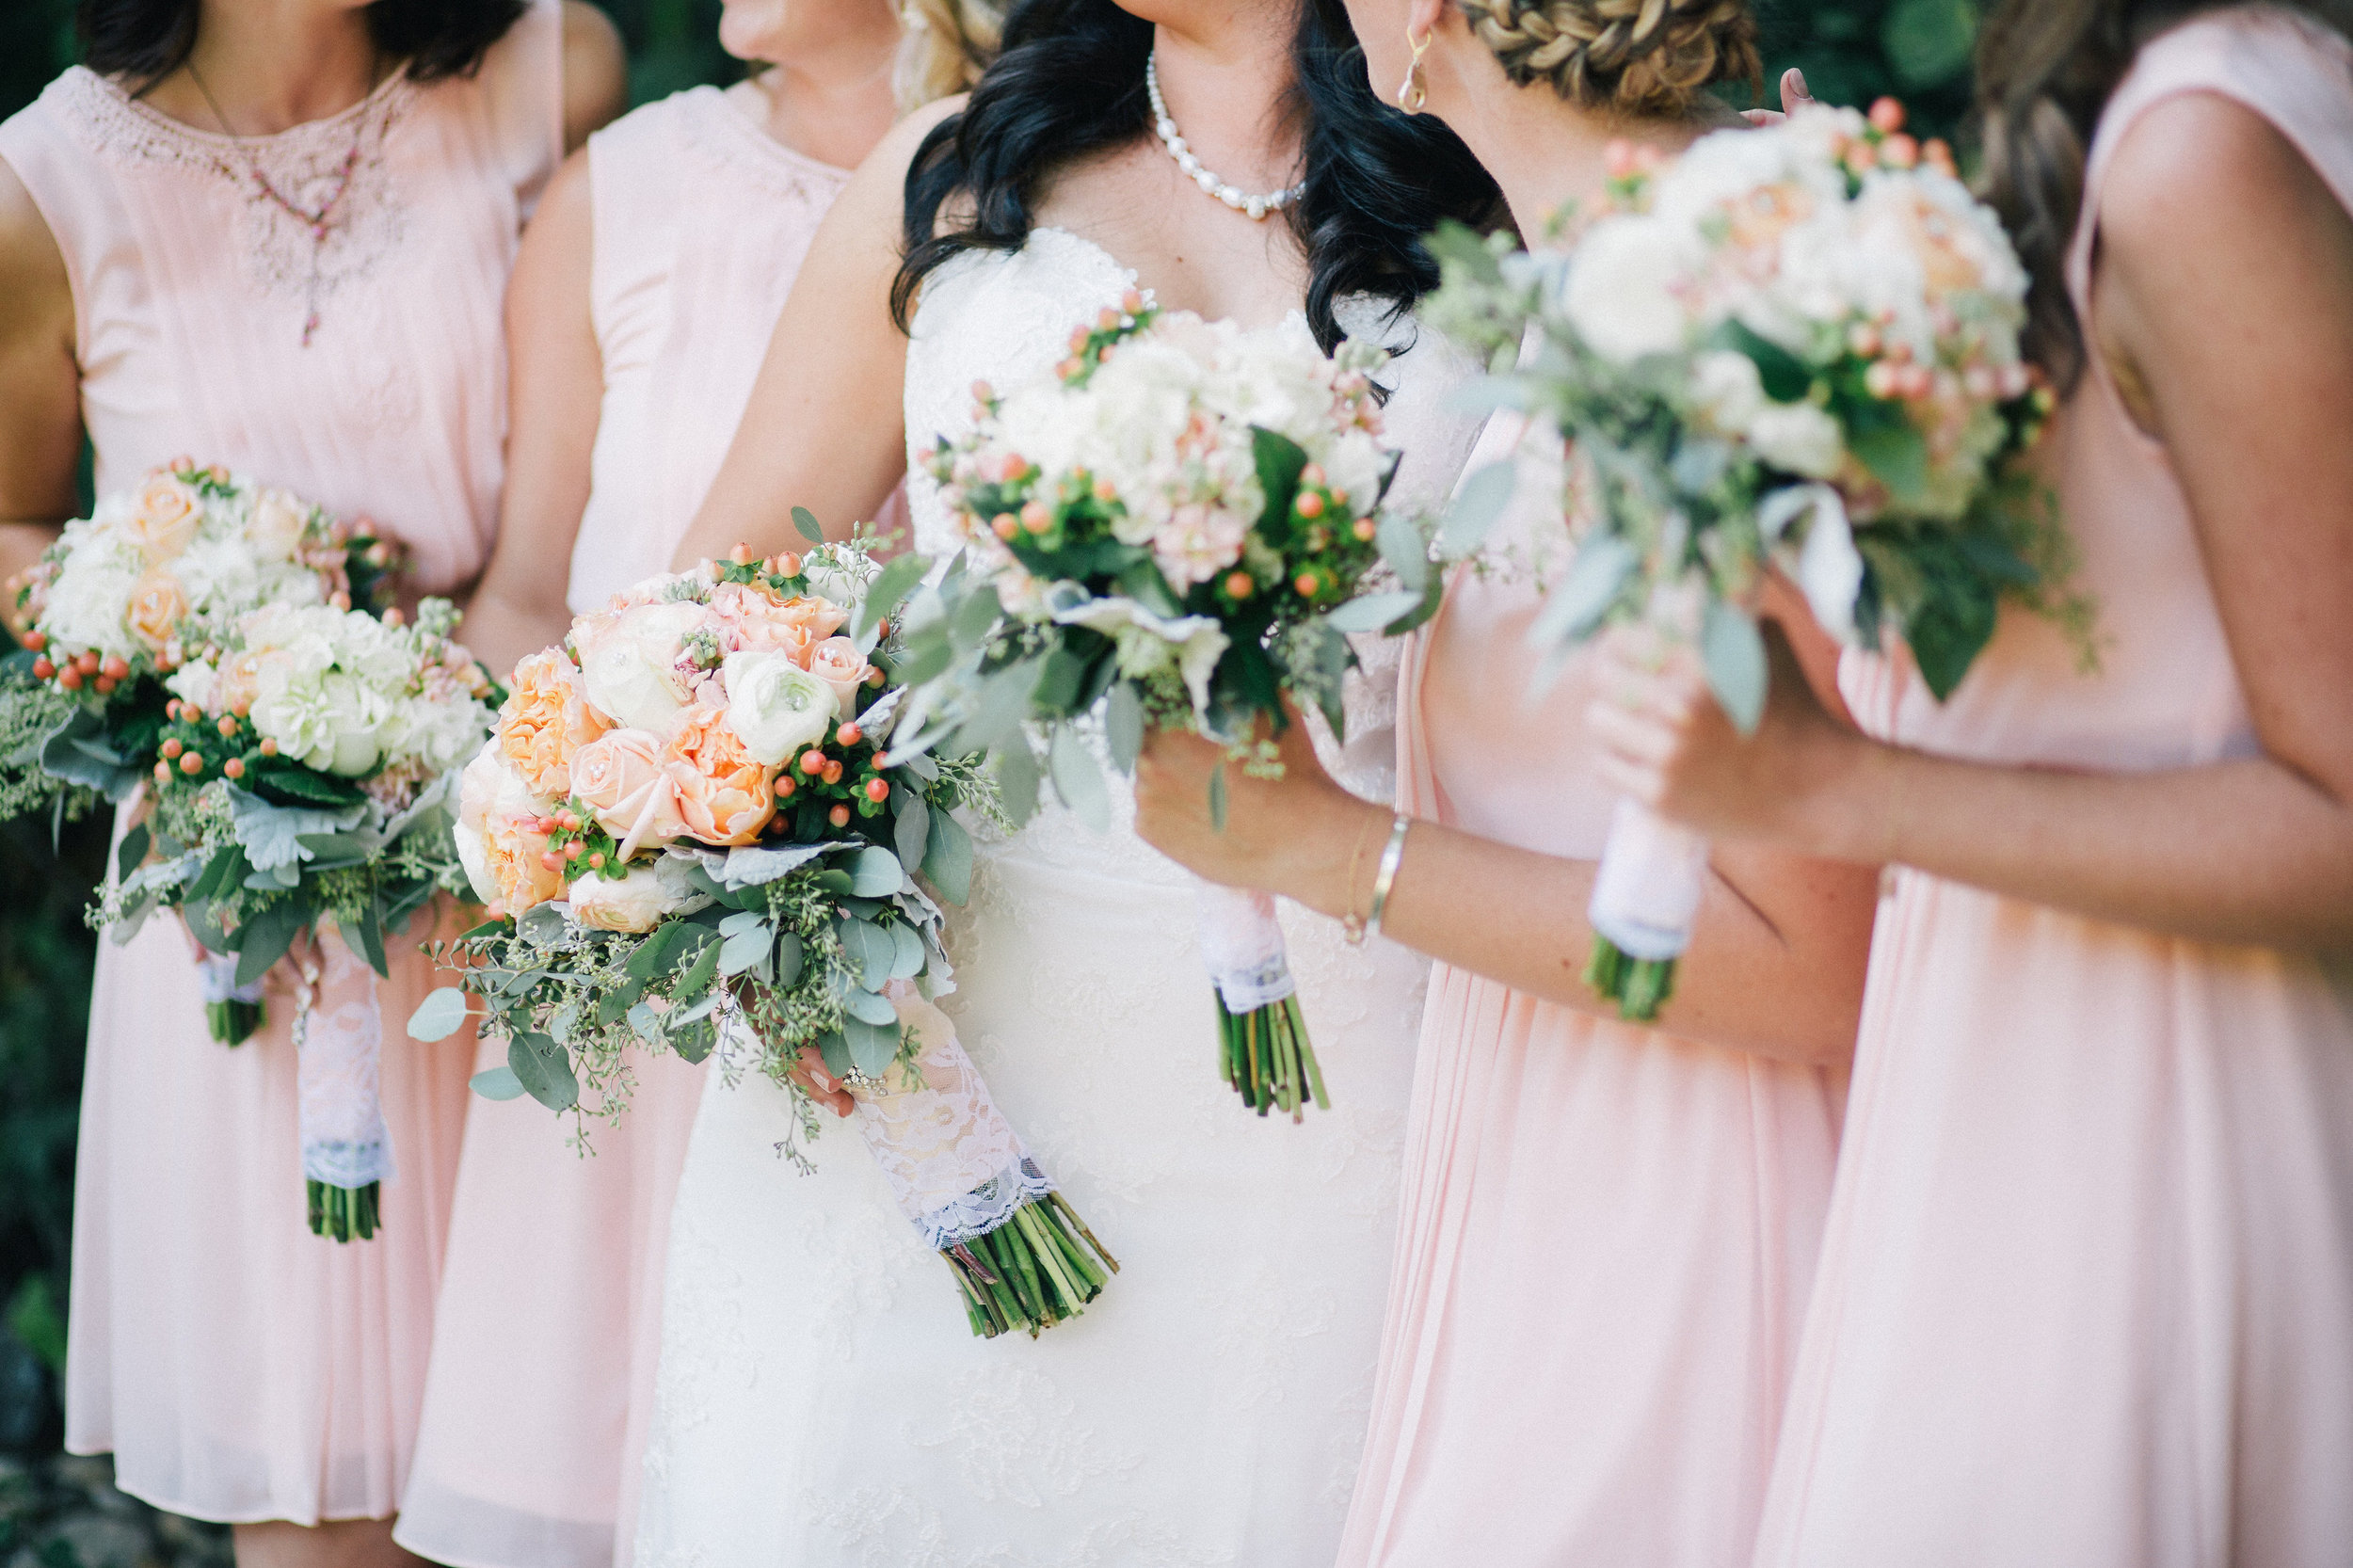 Bridalbliss.com | Portland Wedding | Oregon Event Planning and Design | Jessica Watson Photography